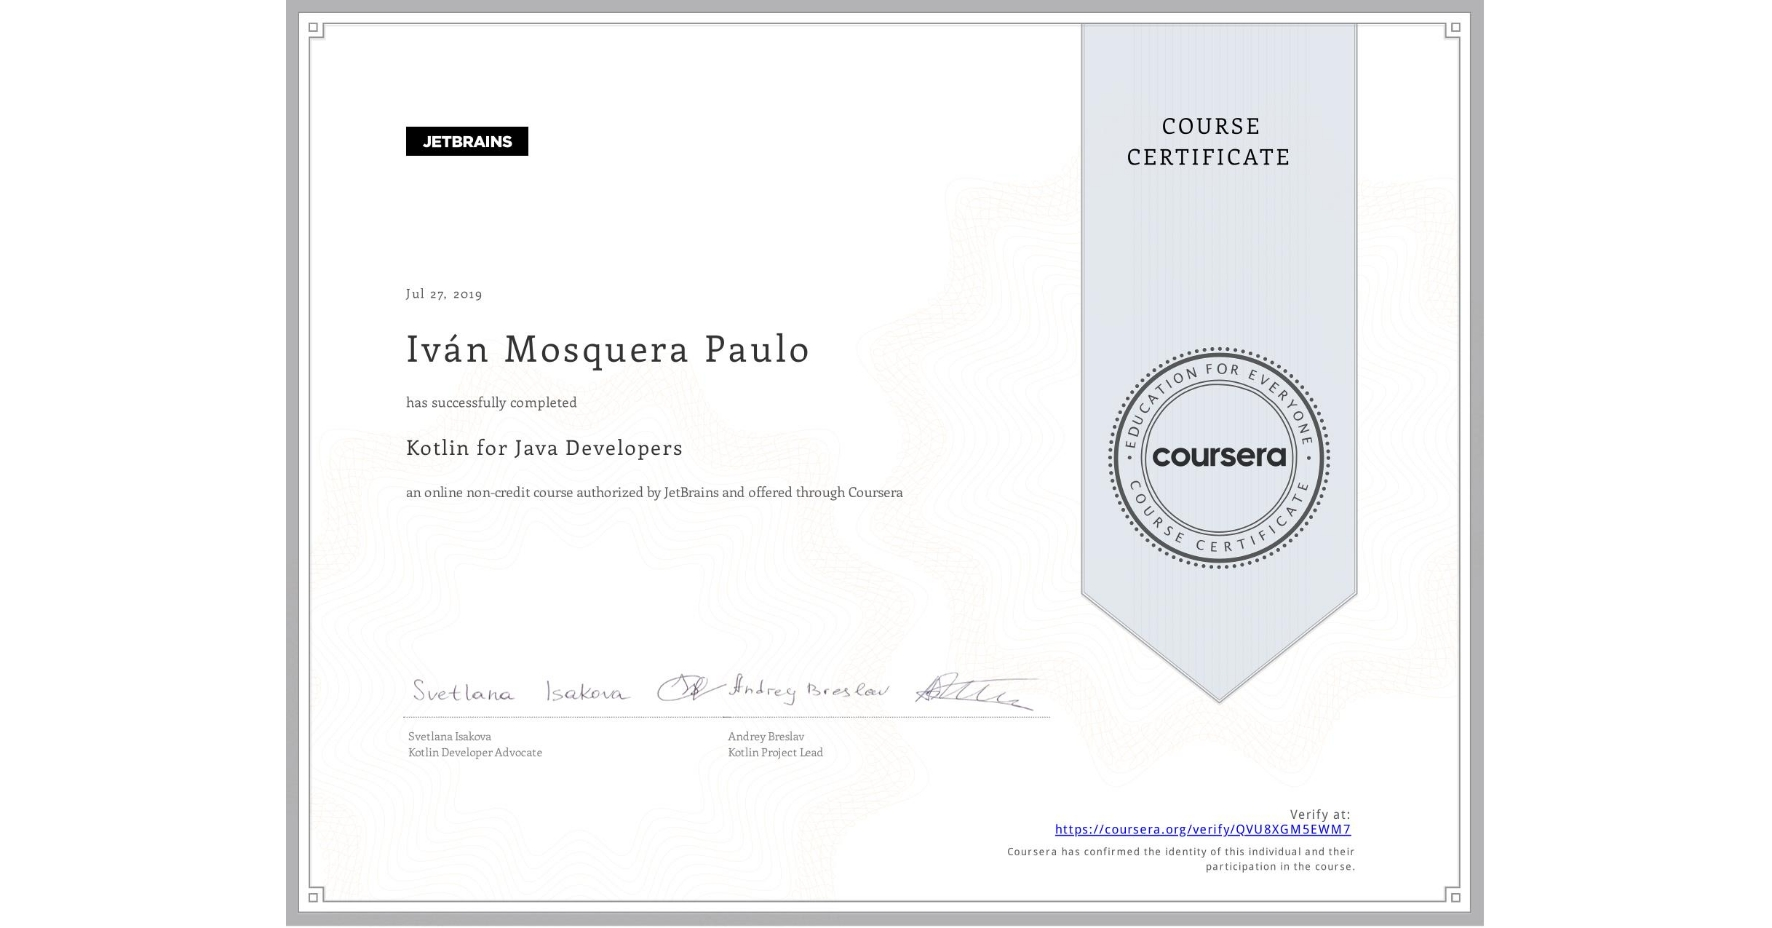 View certificate for Iván Mosquera Paulo, Kotlin for Java Developers, an online non-credit course authorized by JetBrains and offered through Coursera